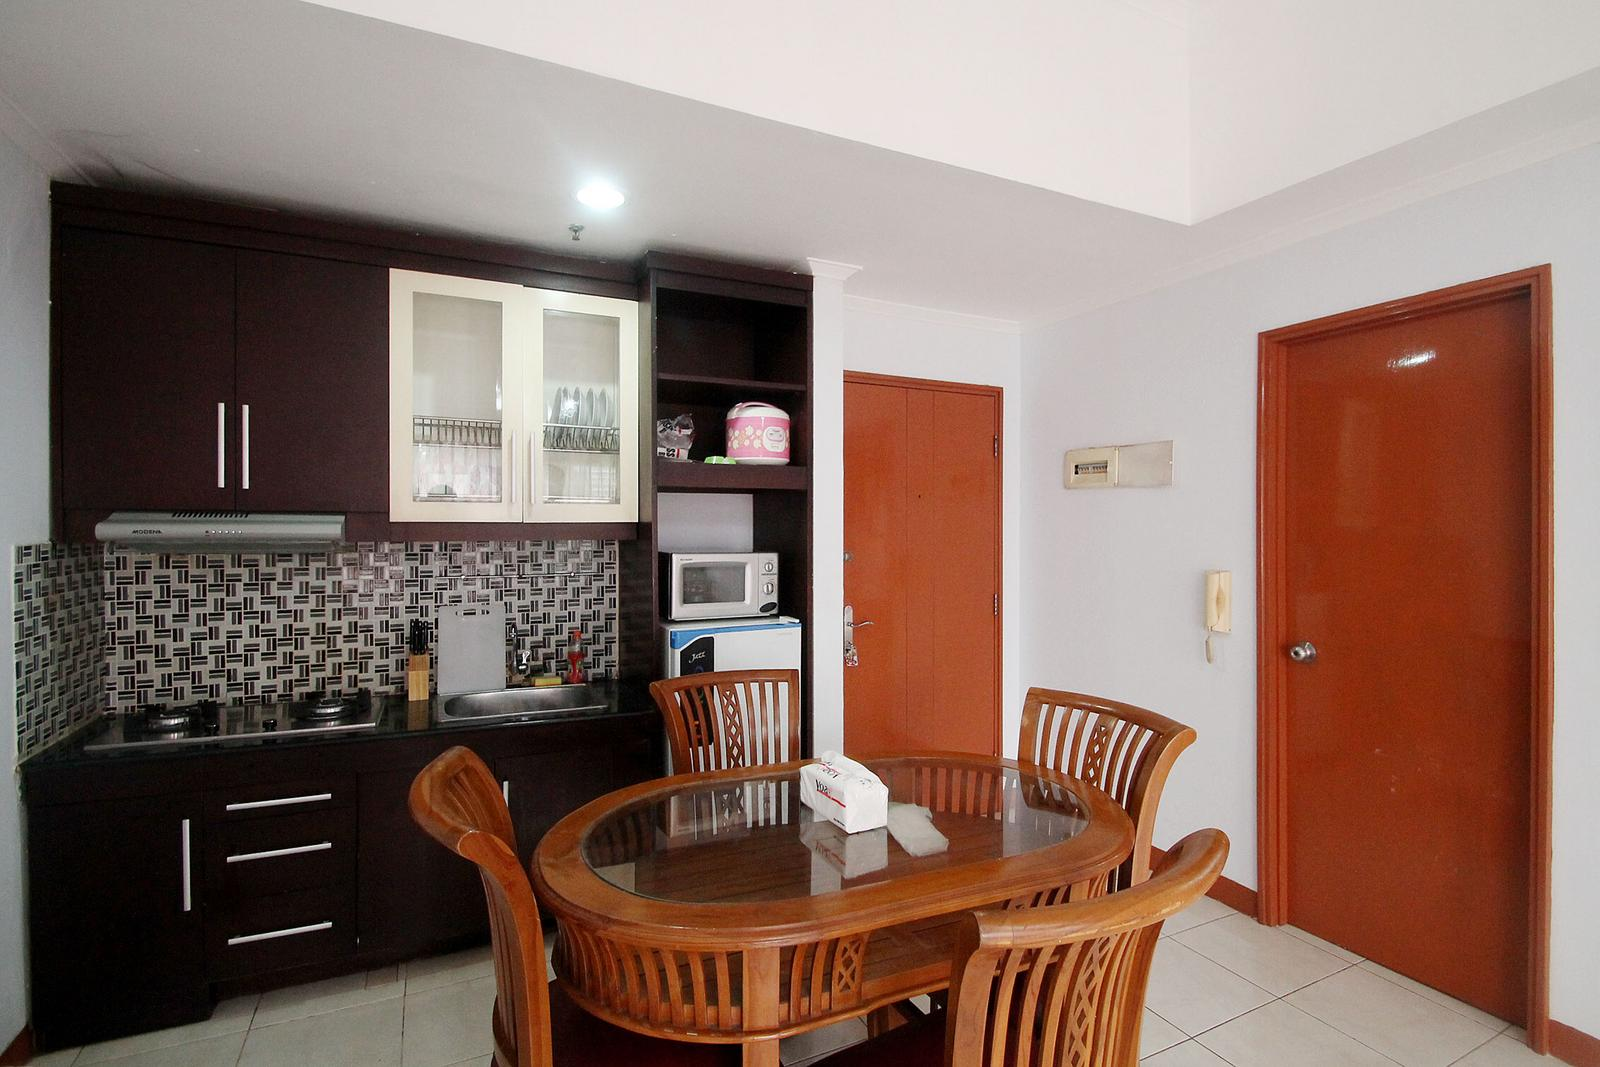 Sudirman Park Apartment - 3 BR Homey & Comfortable Room @ Sudirman Park Apartment